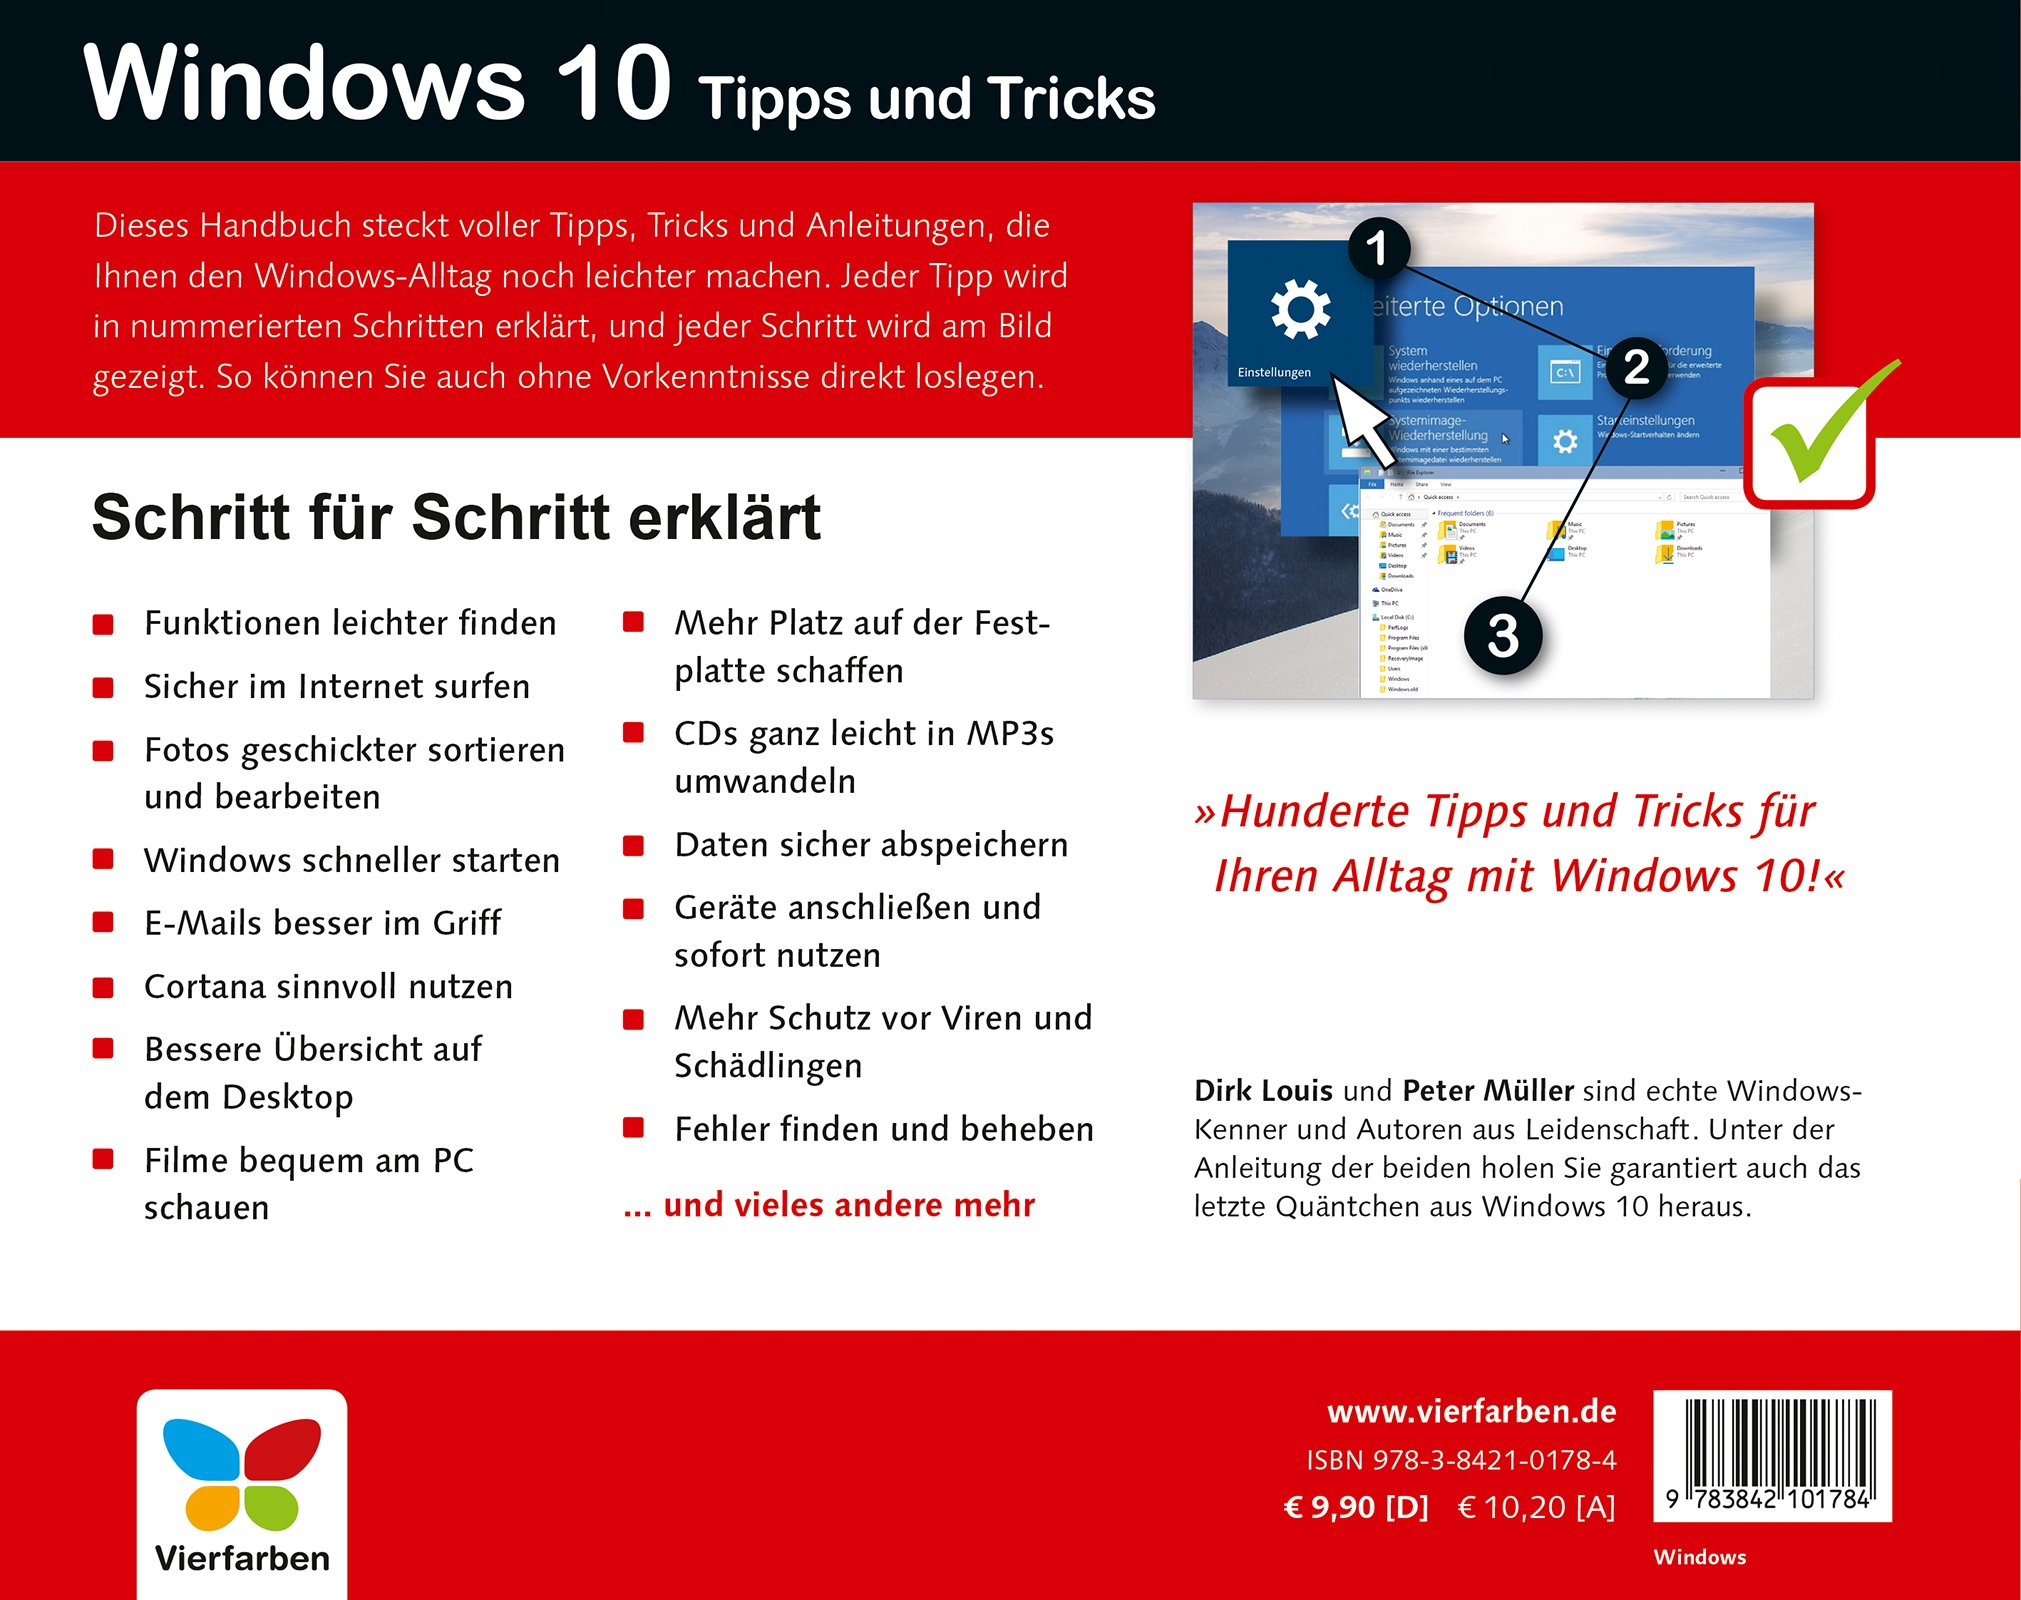 Windows 10 Tipps und Tricks: 9783842101784: Amazon.com: Books